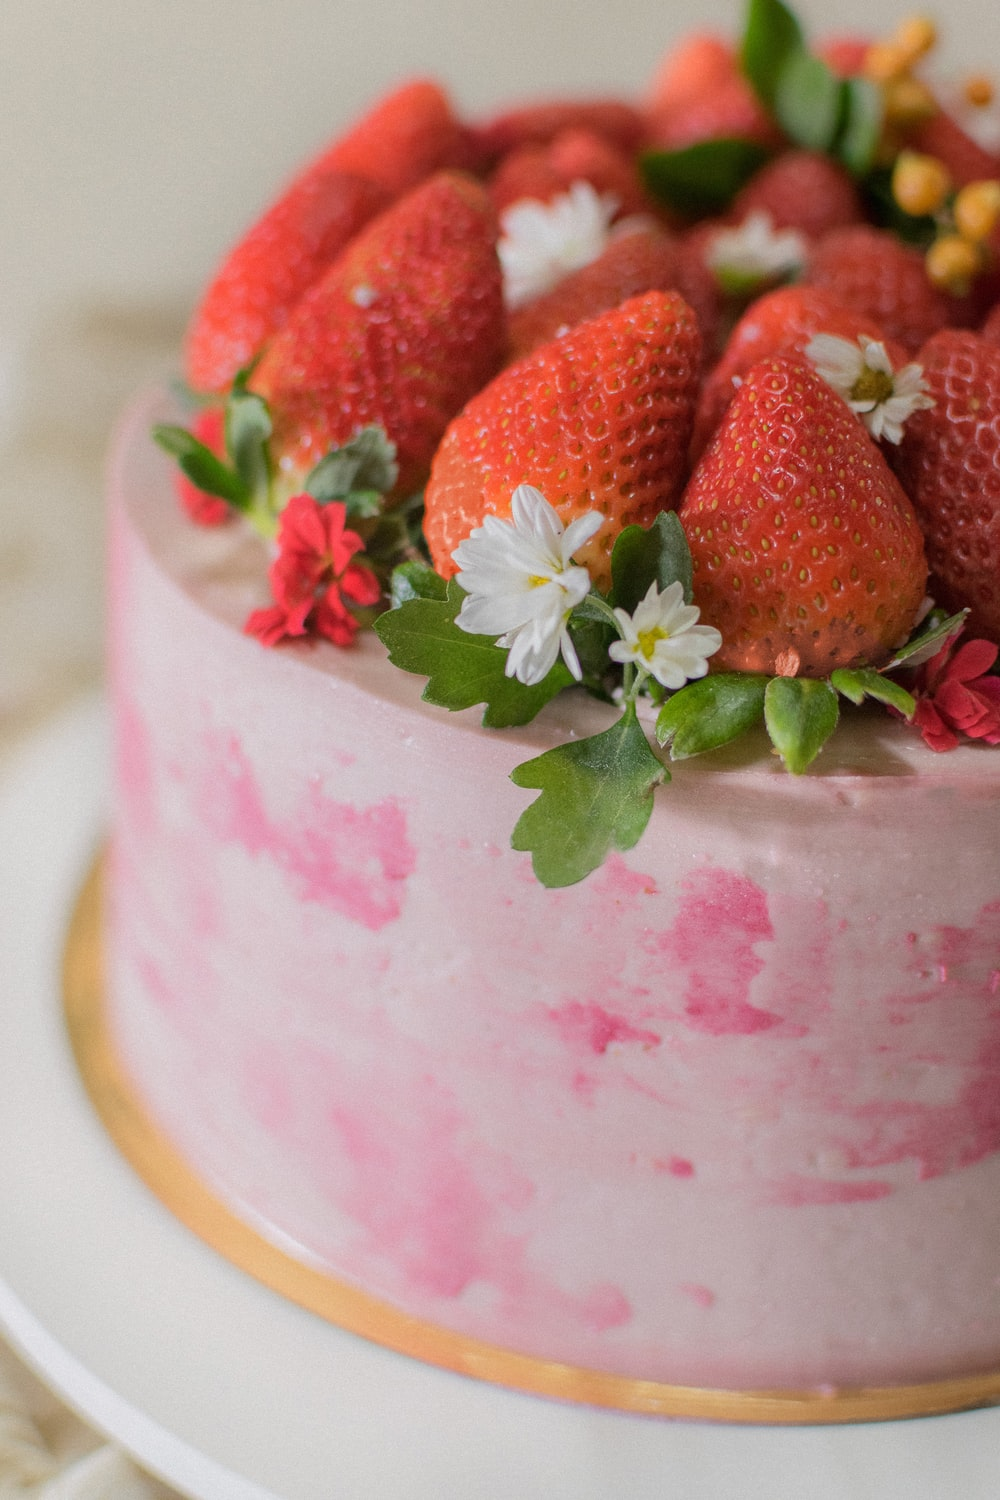 round cake with strawberries on top